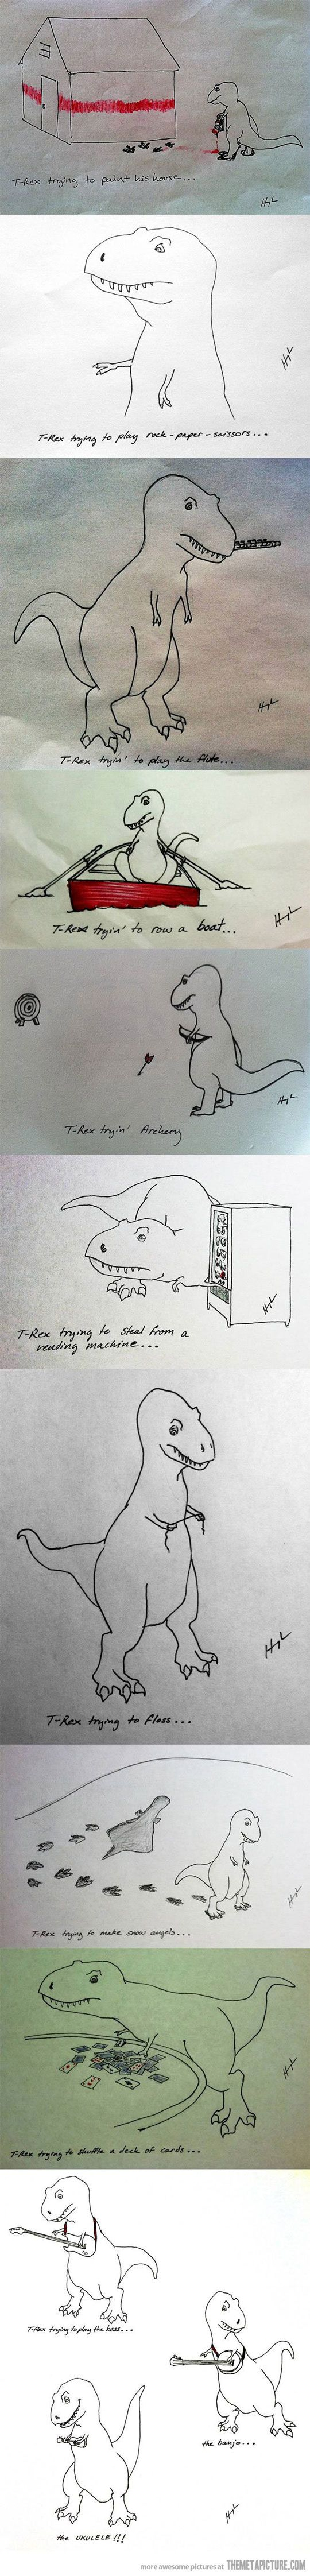 Poor T-Rex when I saw this I felt like crying I don't know why but I did! ):